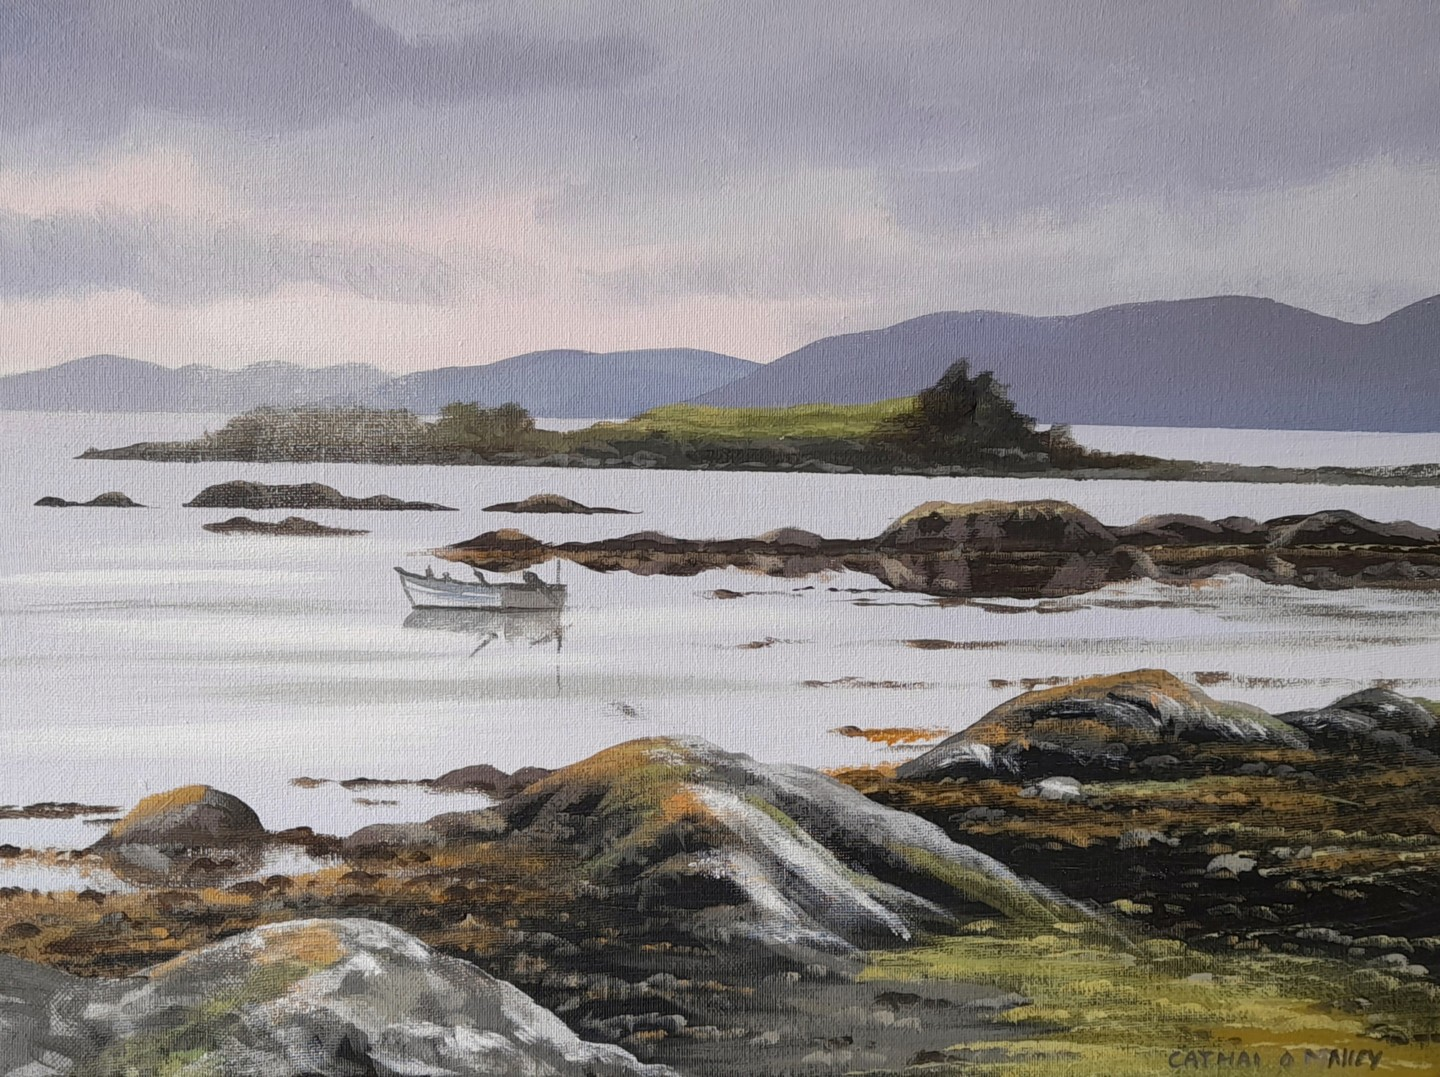 Cathal O Malley - Kenmare beach co kerry